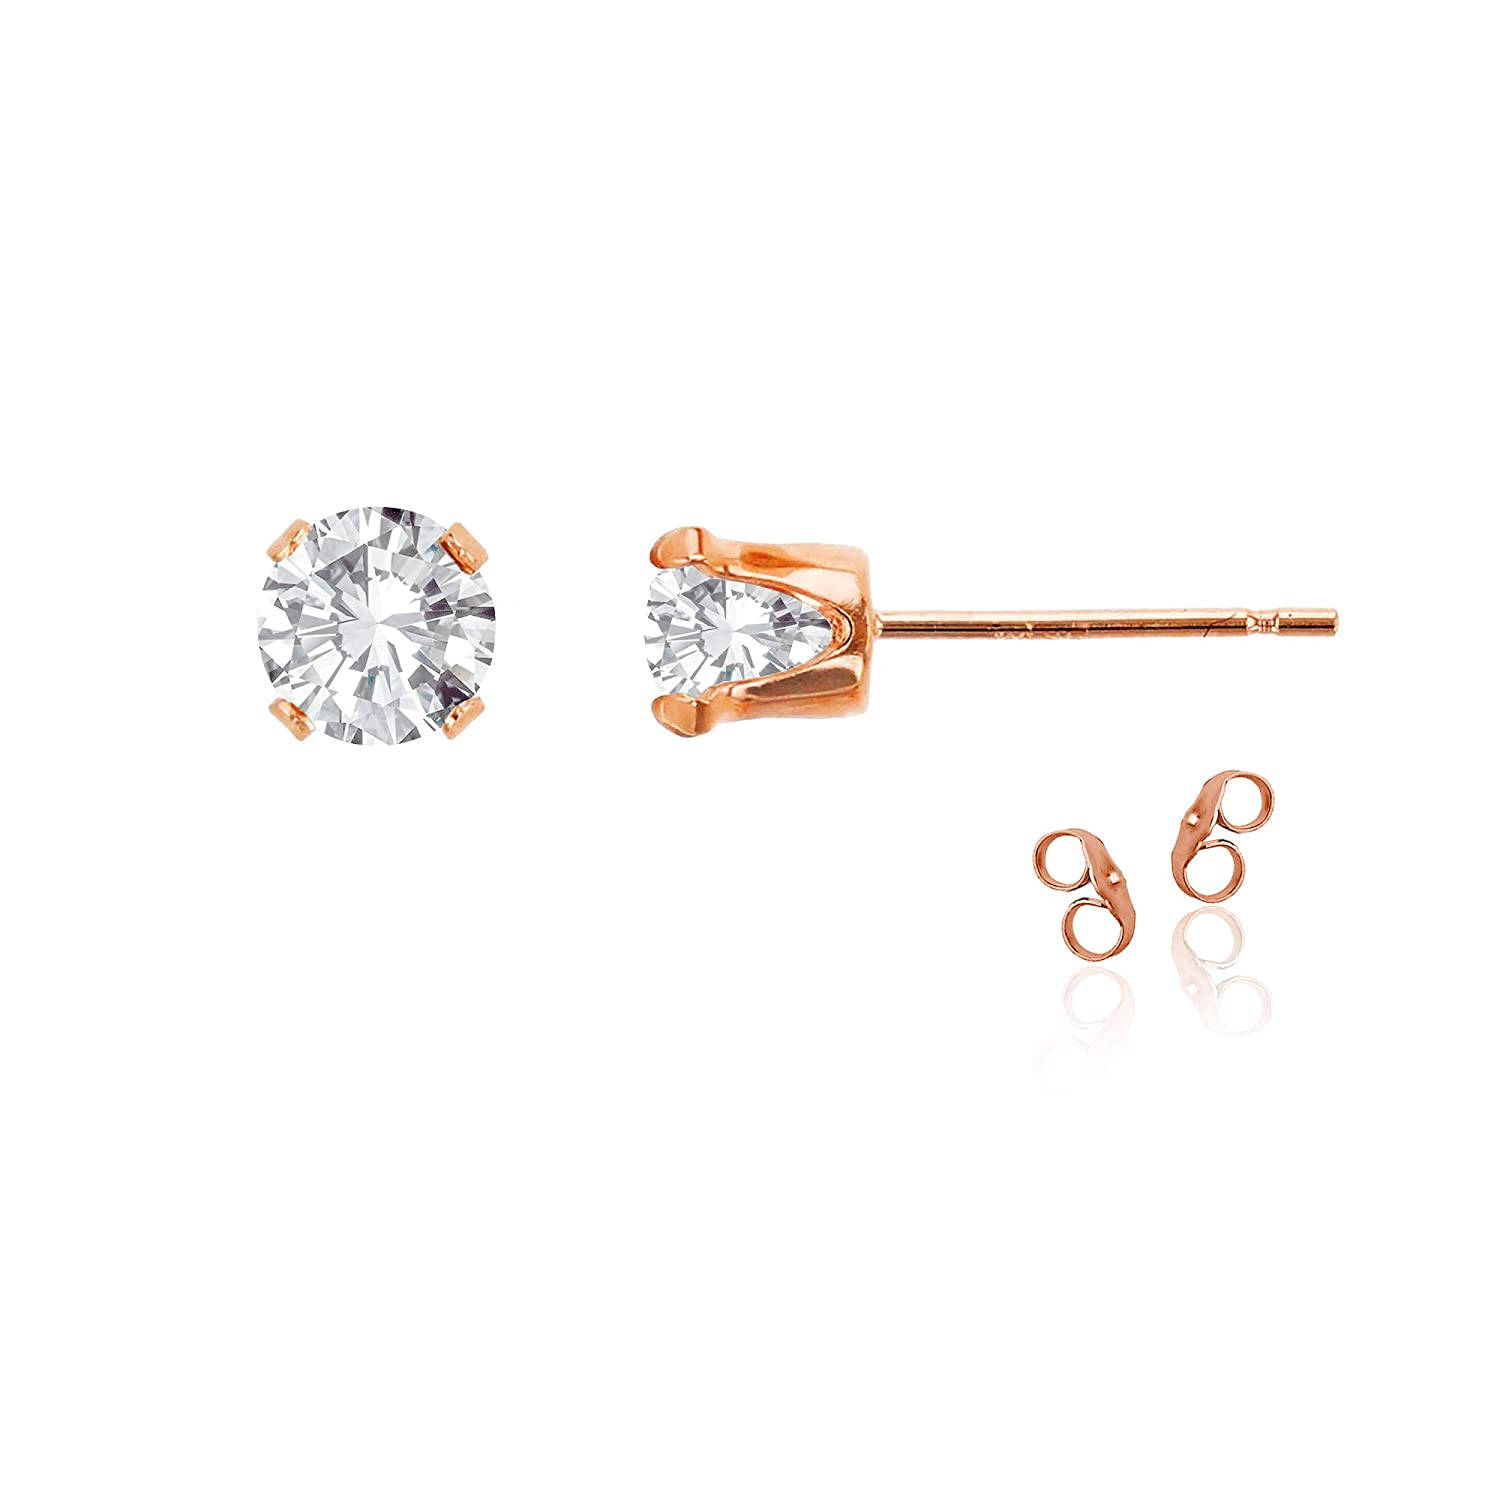 14K Gold Plated 925 Sterling Silver Yellow Rose Gold 7mm Round Genuine Or Created Gemstone Birthstone Stud Earrings